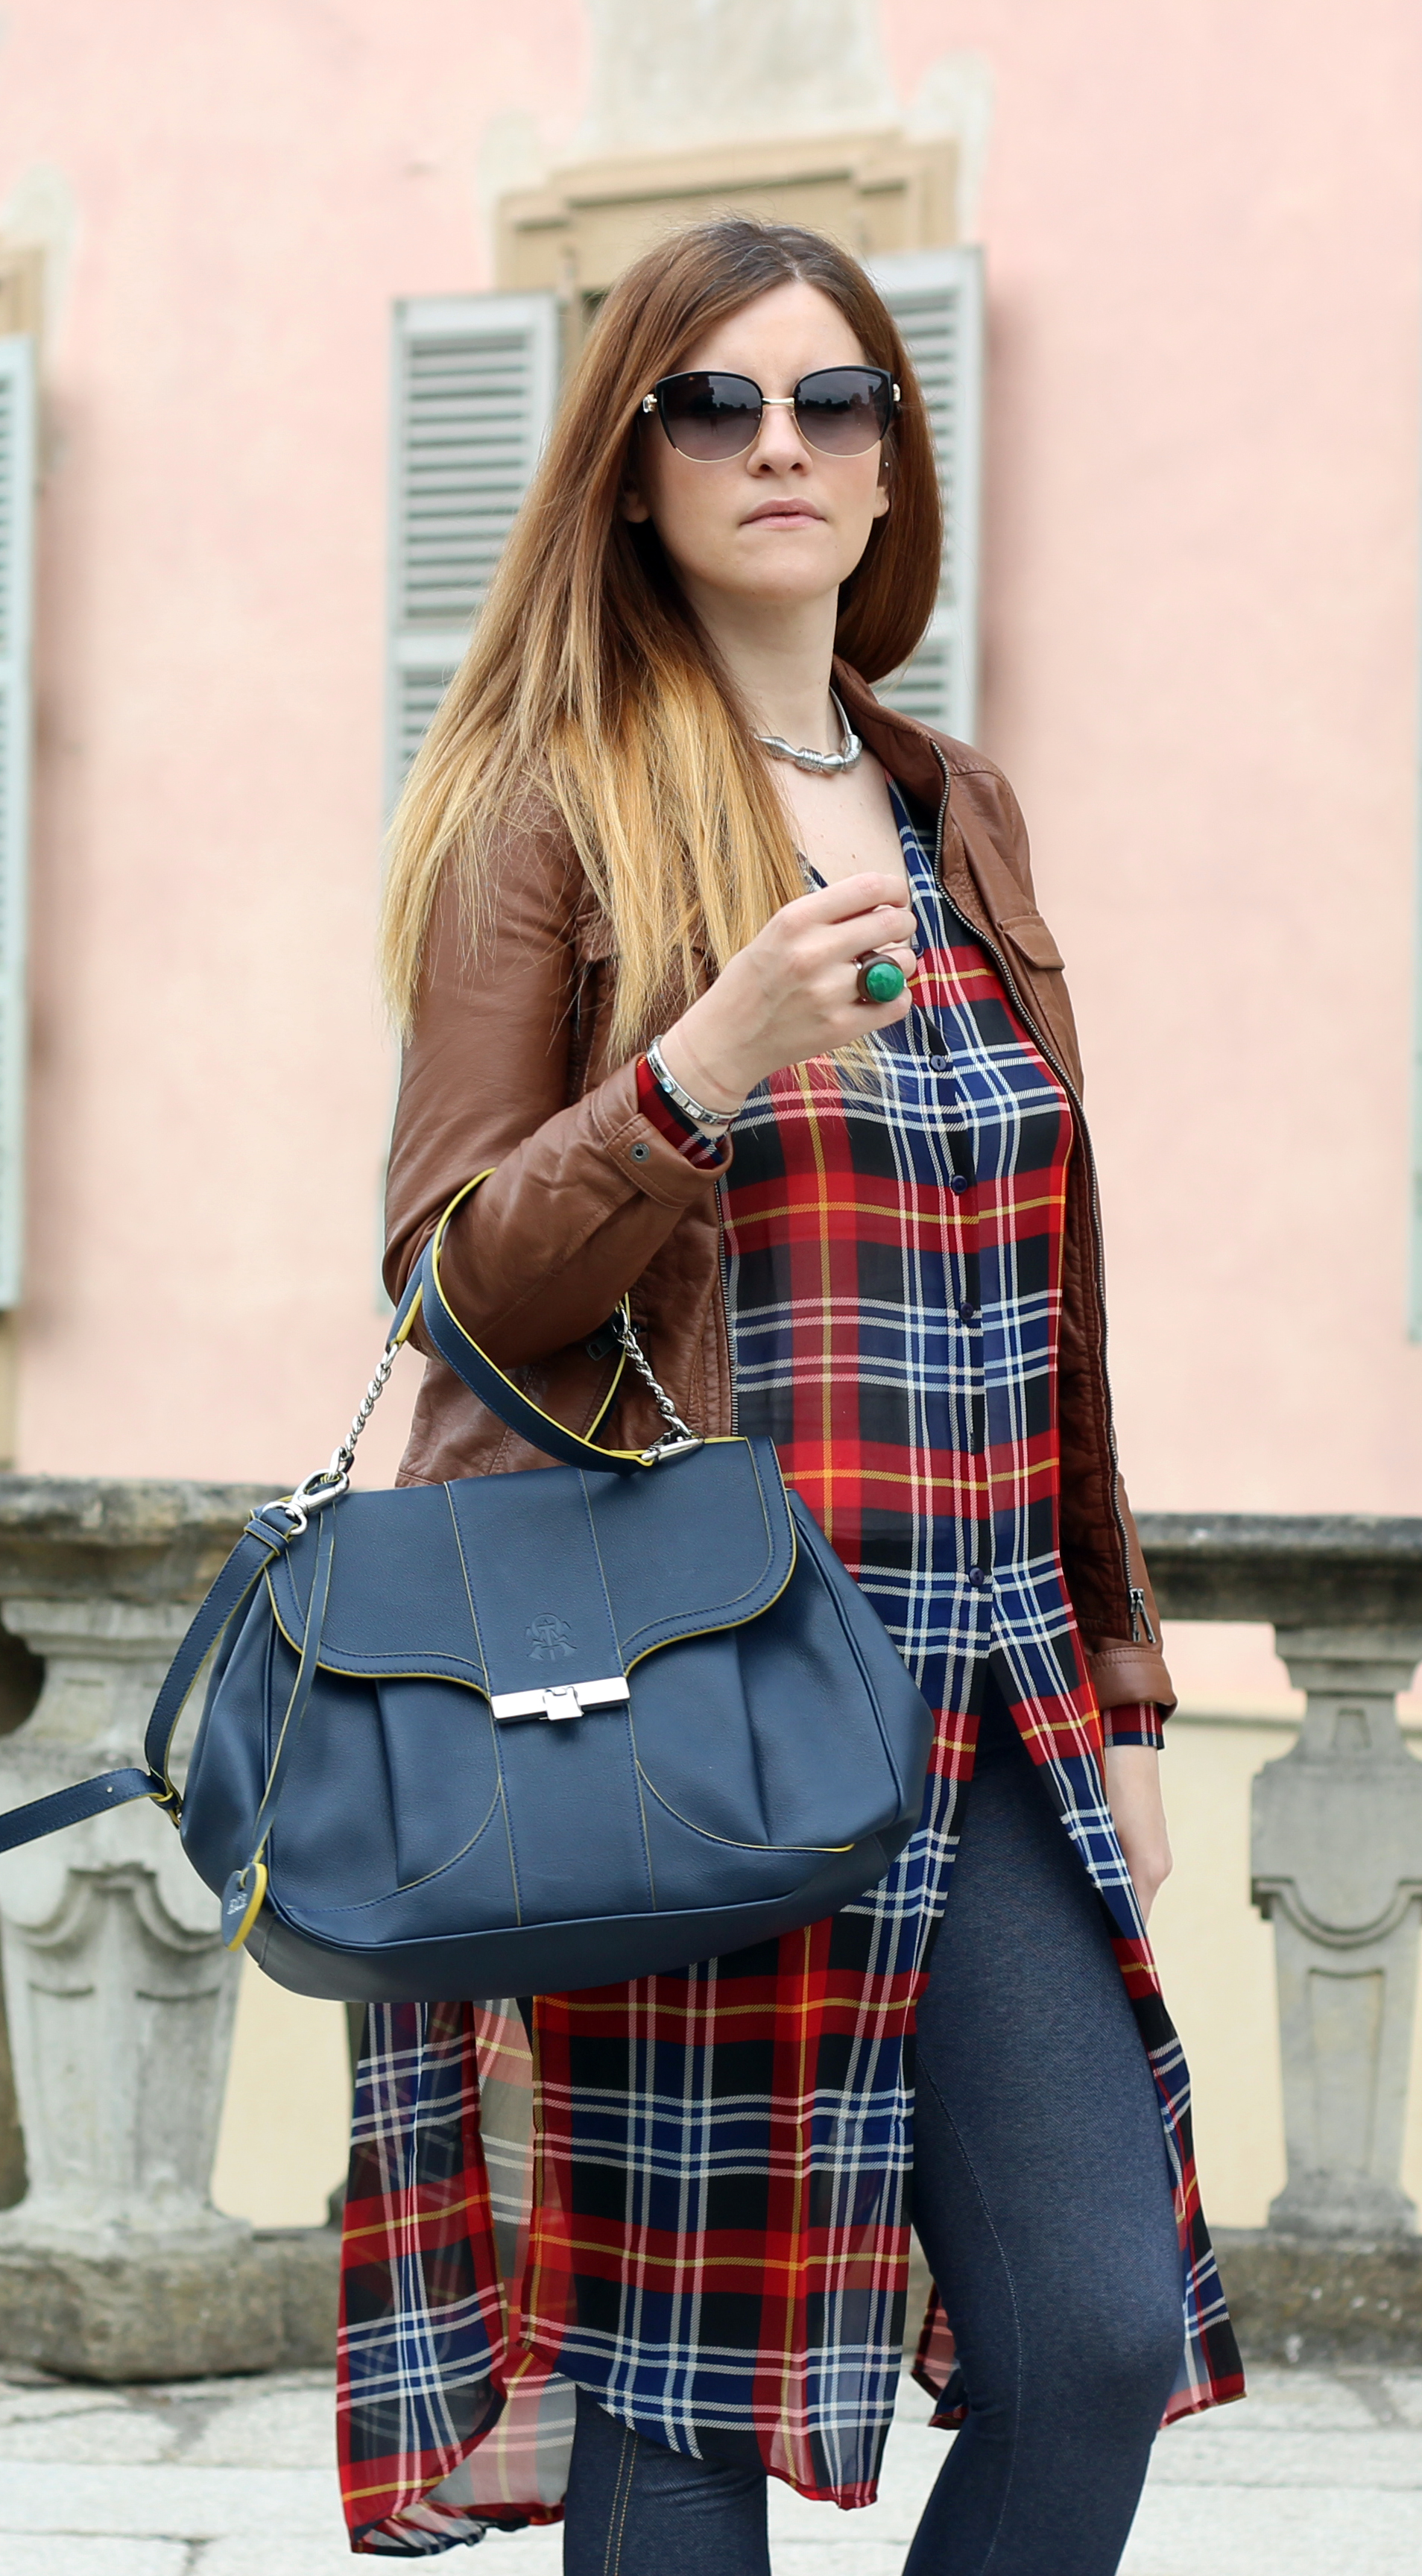 ELISABETTA BERTOLINI FASHION BLOGGER OUTFIT TARTAN LONG SHIRT